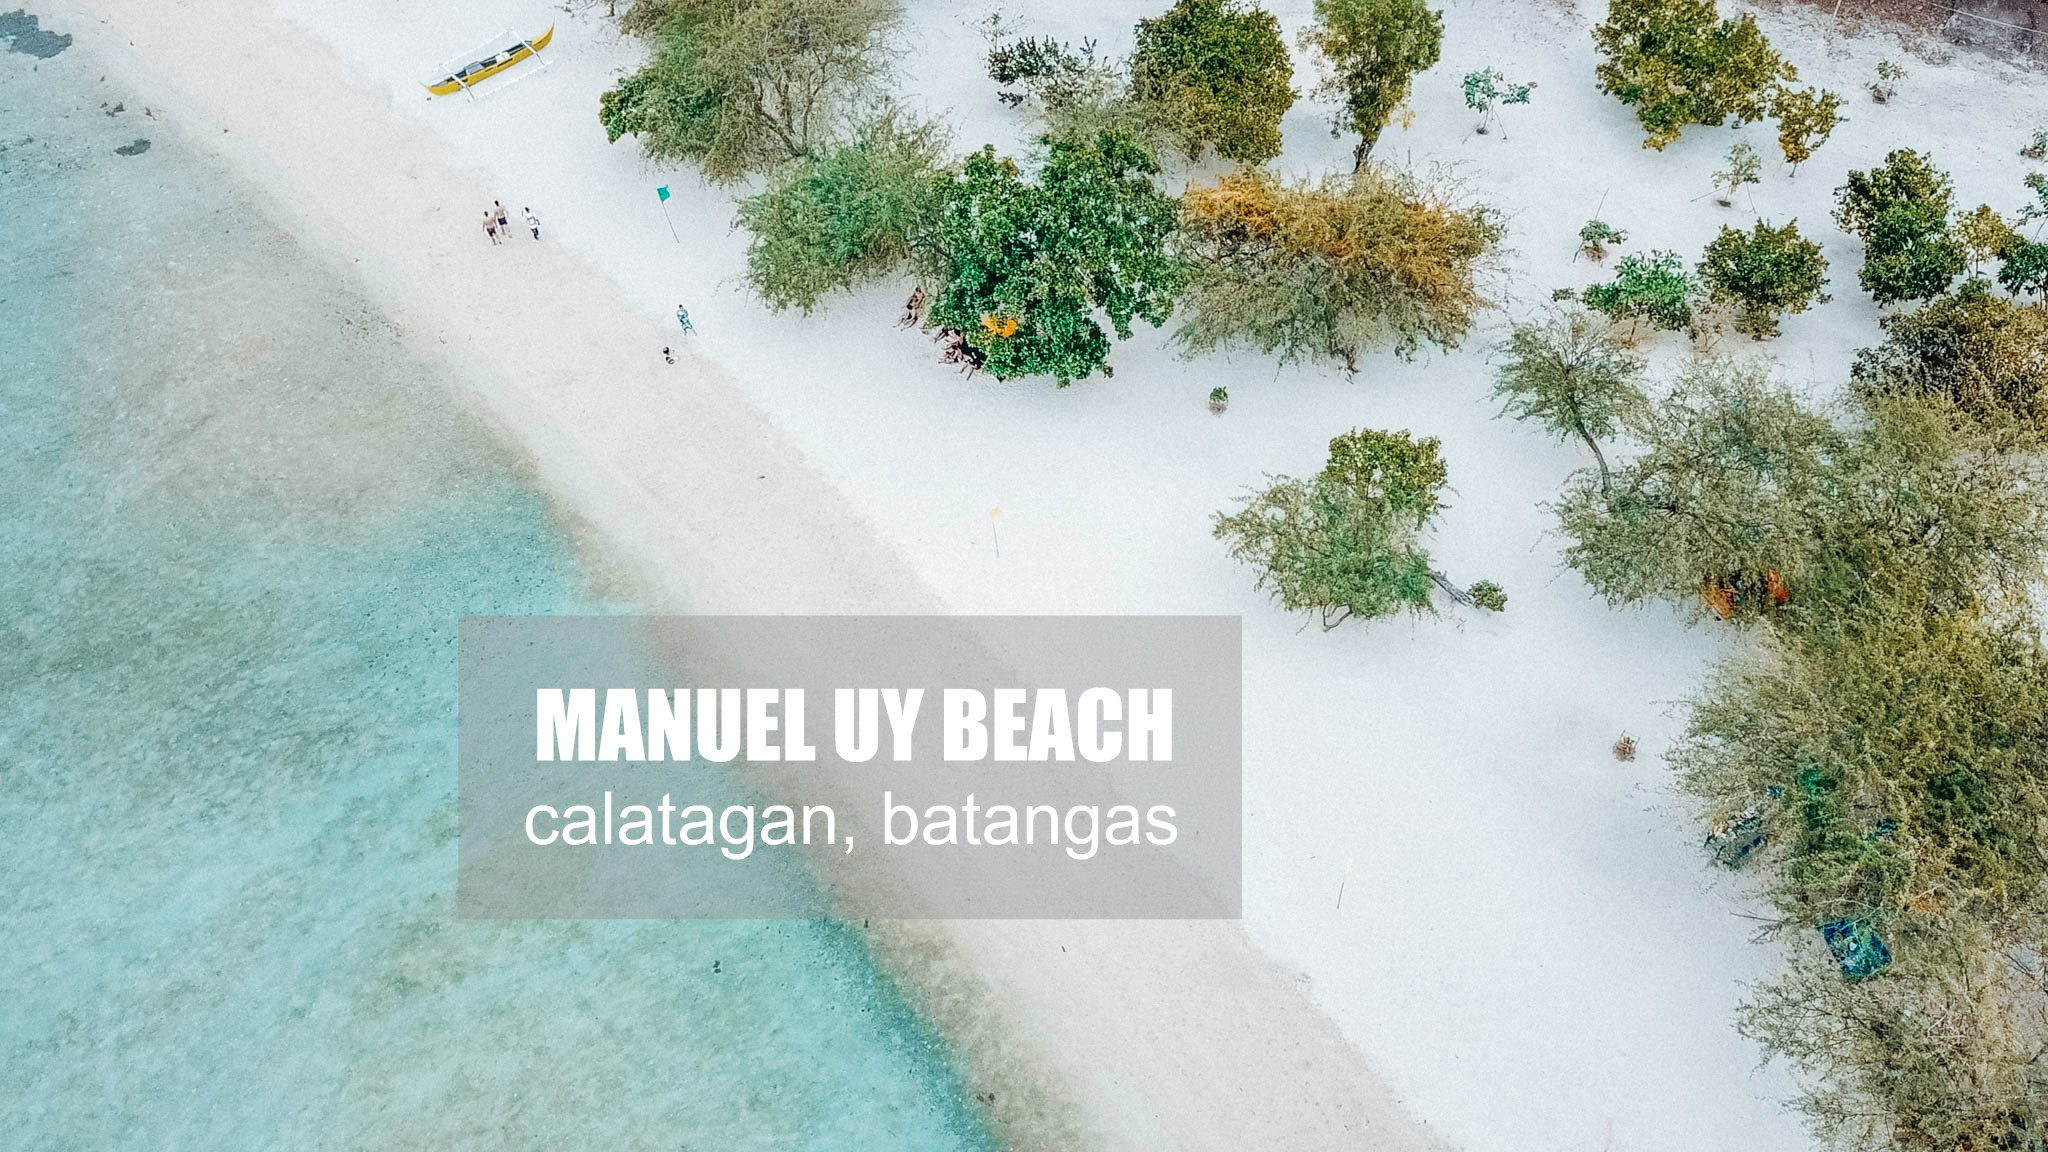 MANUEL UY BEACH RESORT CALATAGAN BATANGAS: DIY TRAVEL GUIDE (Budget + Itinerary)